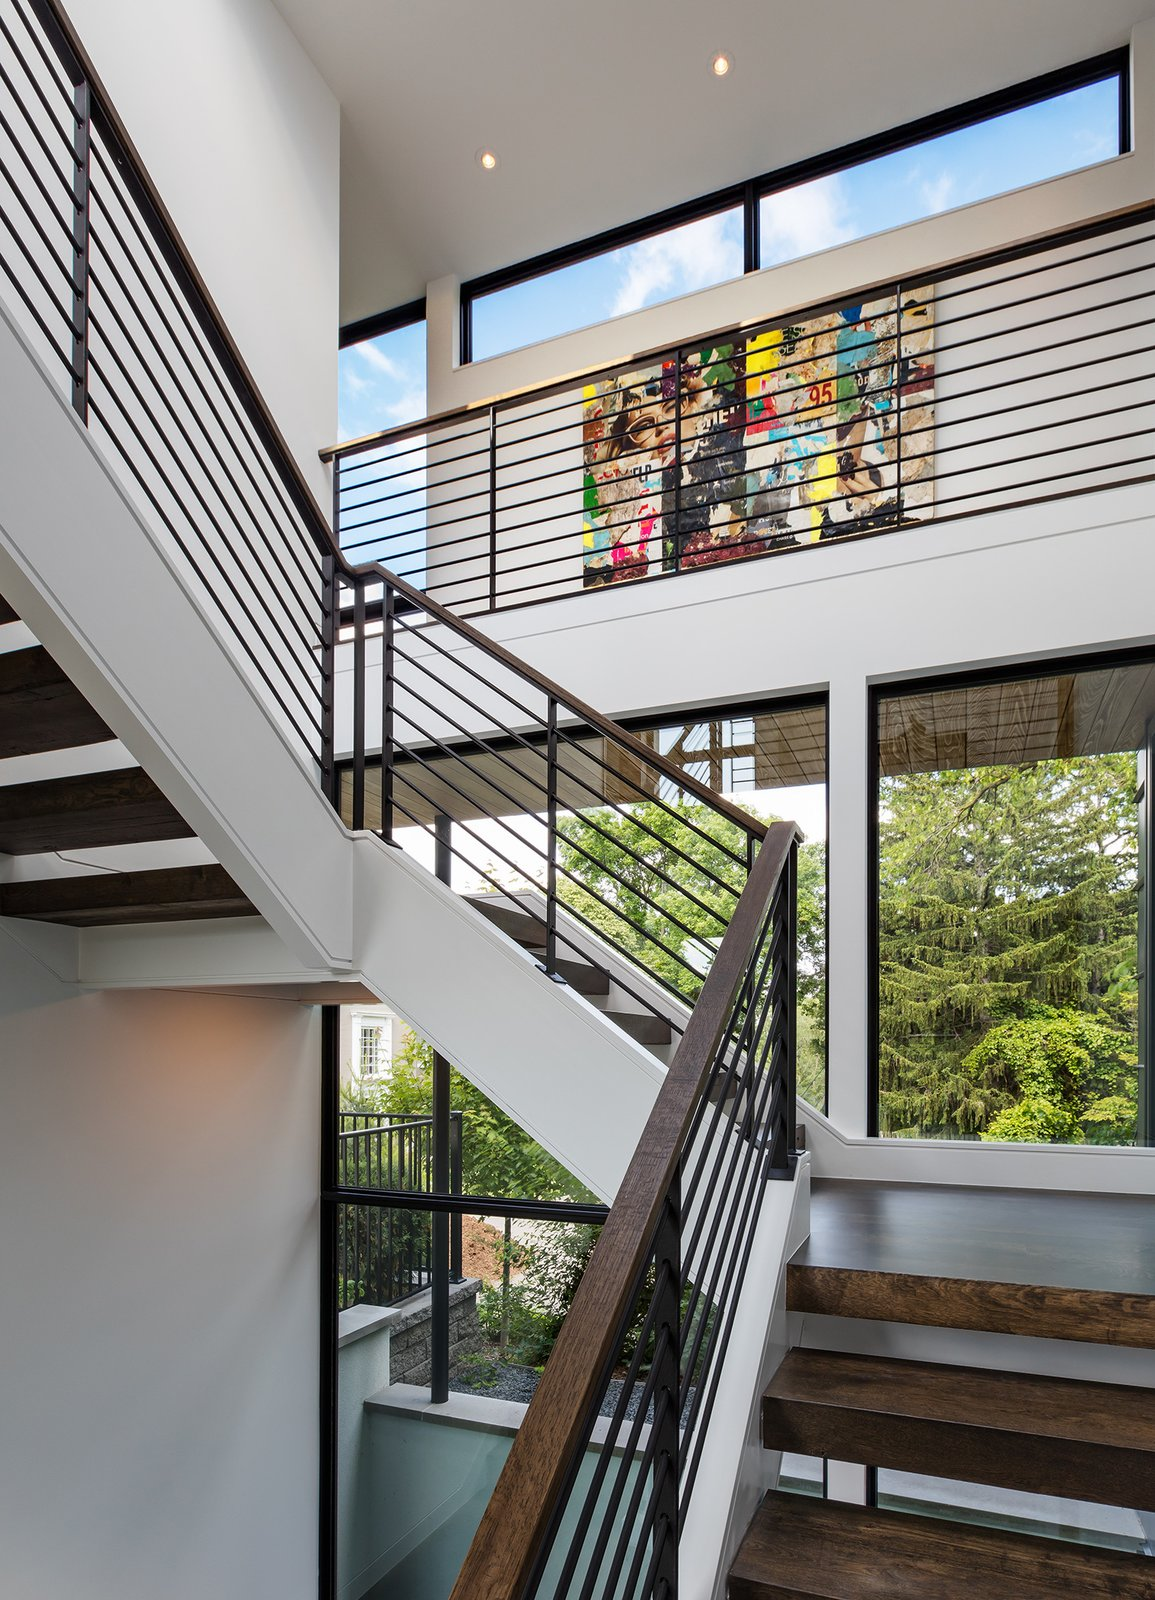 Wood Tread, Metal Railing, Windows, Awning Window Type, Picture Window Type, and Metal  Calhoun Pavilions Residence by Peterssen/Keller Architecture